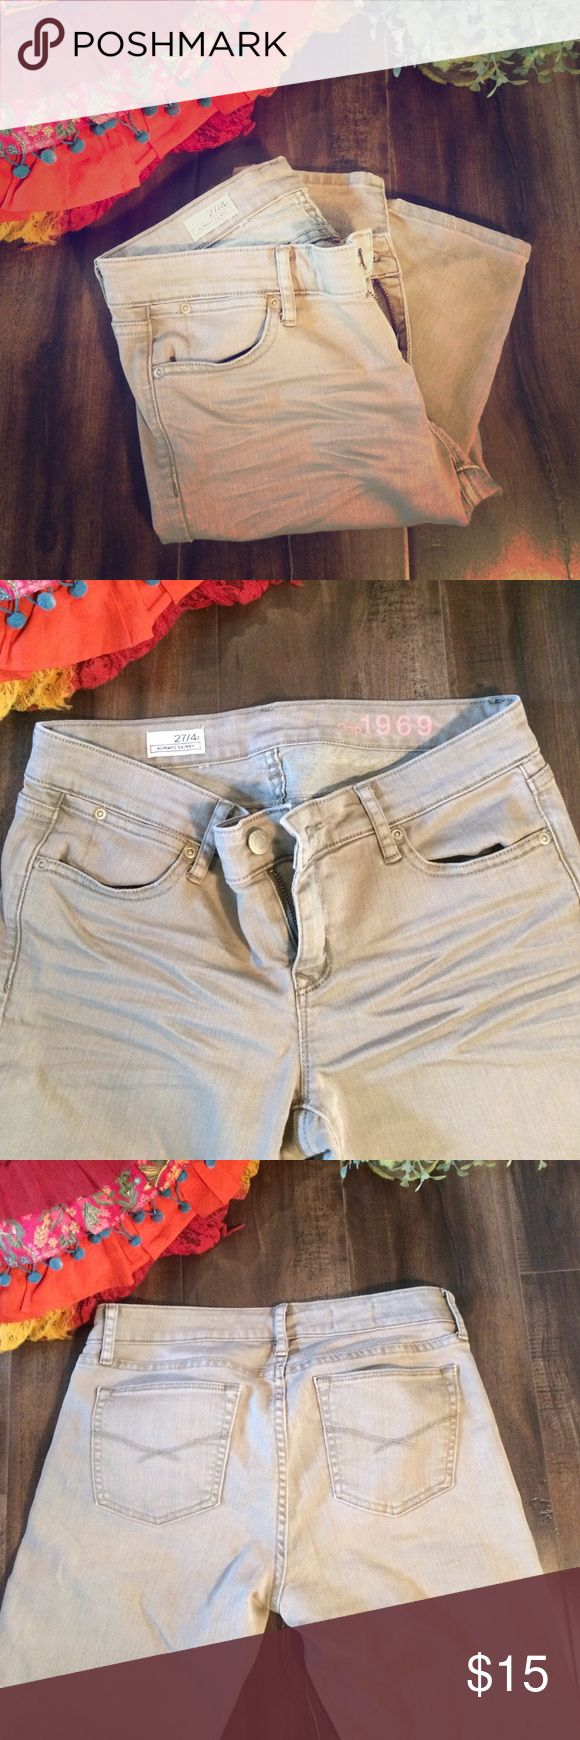 Gap Always Skinny tan jeans Gap size 27/4R Always skinny 1969 tan jeans. Ankle length. Excellent condition. Only worn once or twice. GAP Jeans Skinny